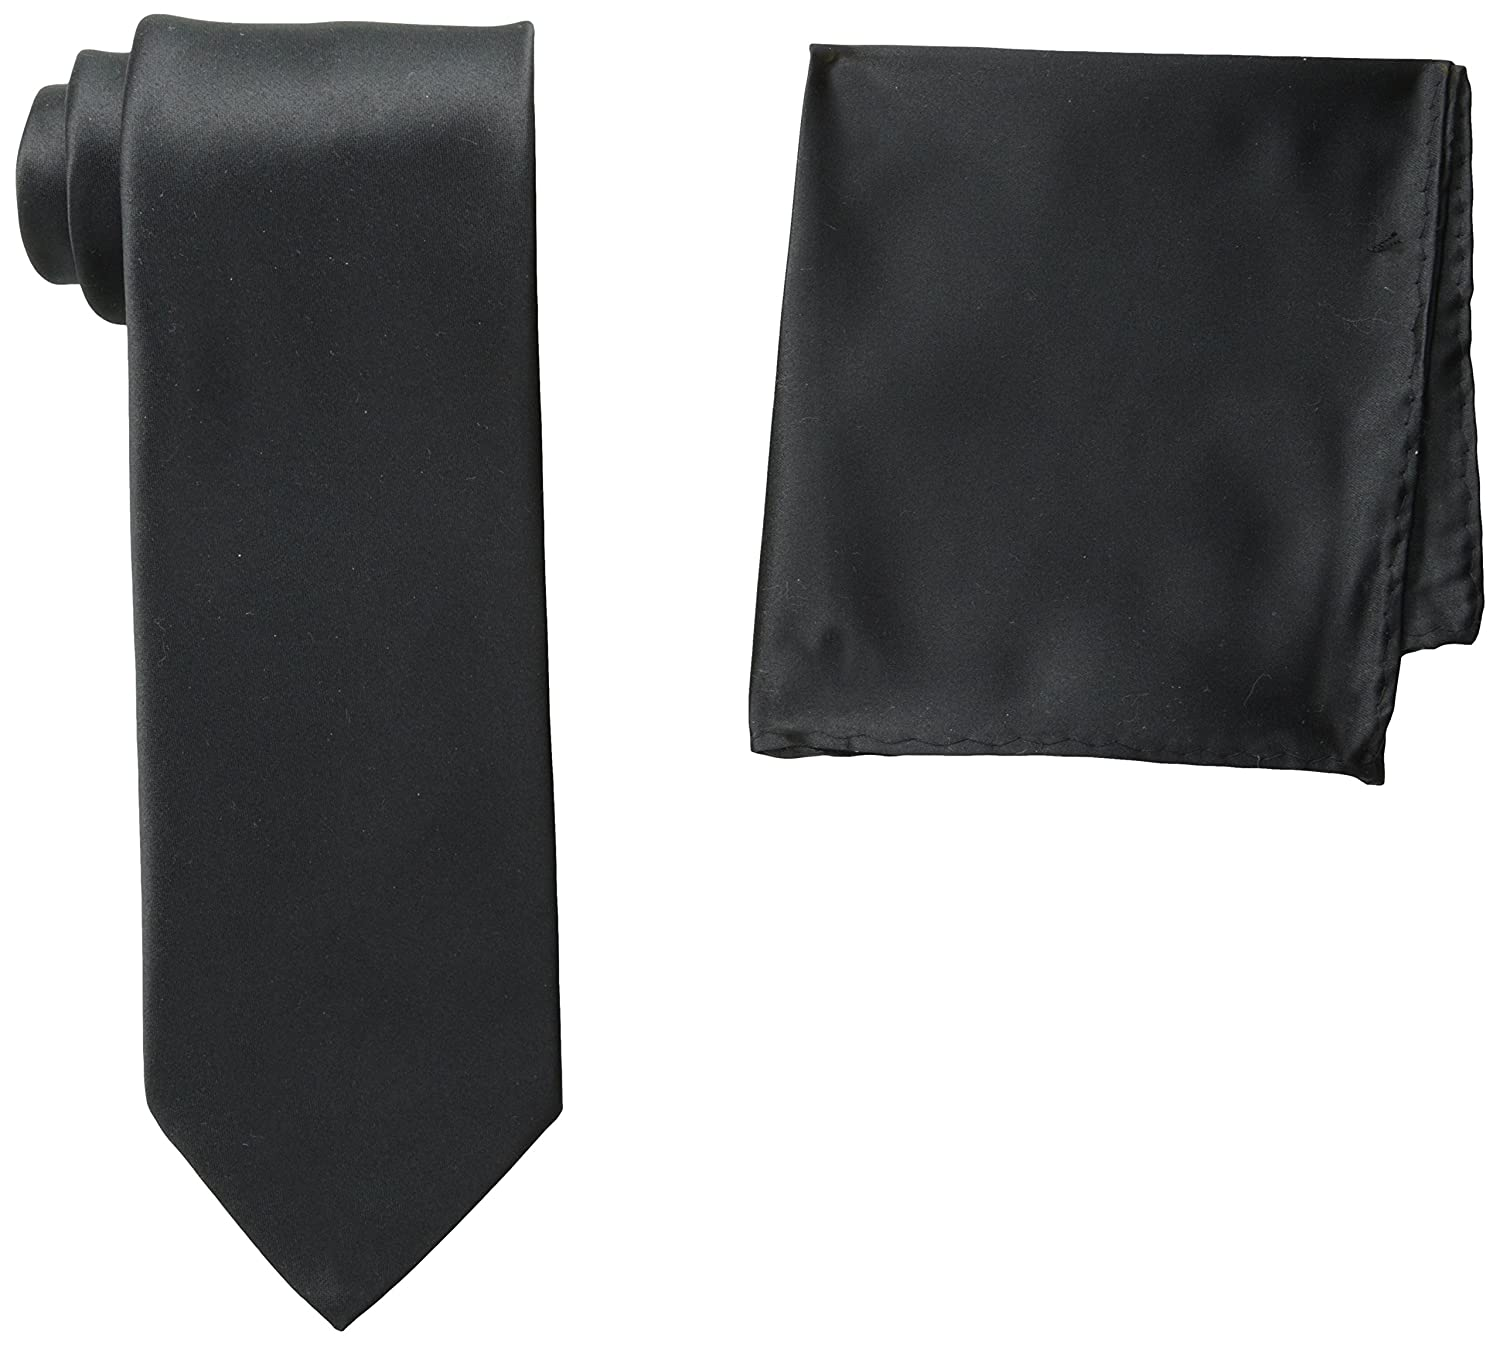 0c5f7503bbe0 Amazon.com: Stacy Adams Men's Satin Solid Tie Set, Black, One Size: Clothing